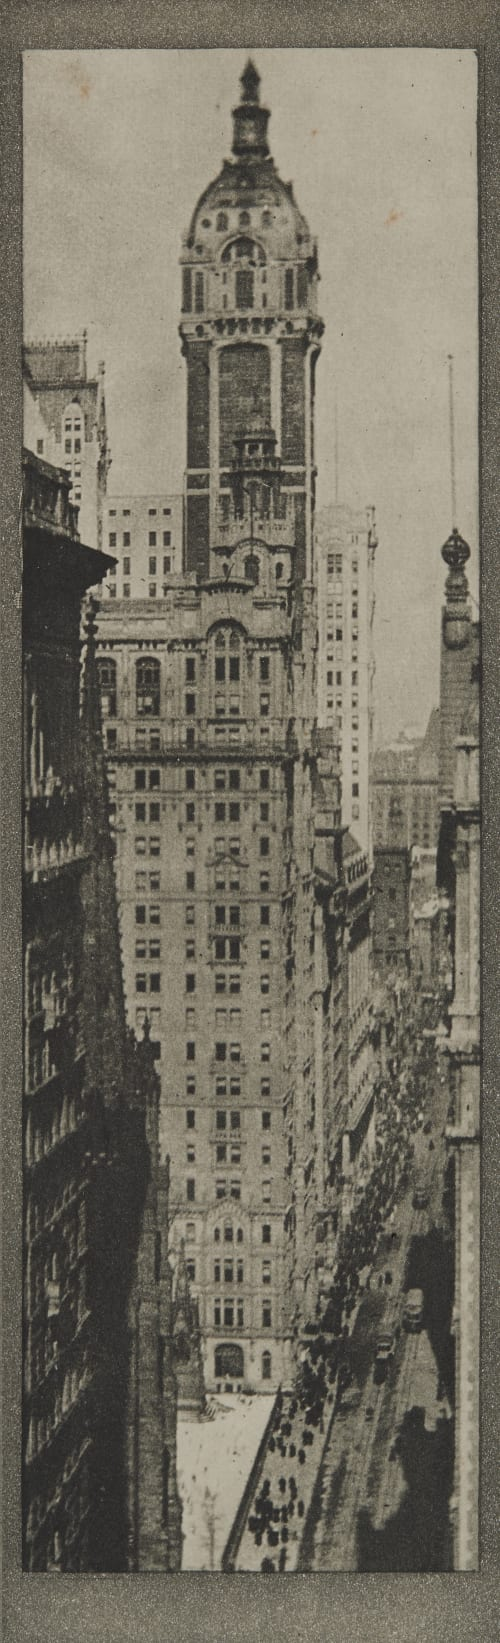 The Singer Building, Noon Coburn, Alvin Langdon  (American, 1882-1966)